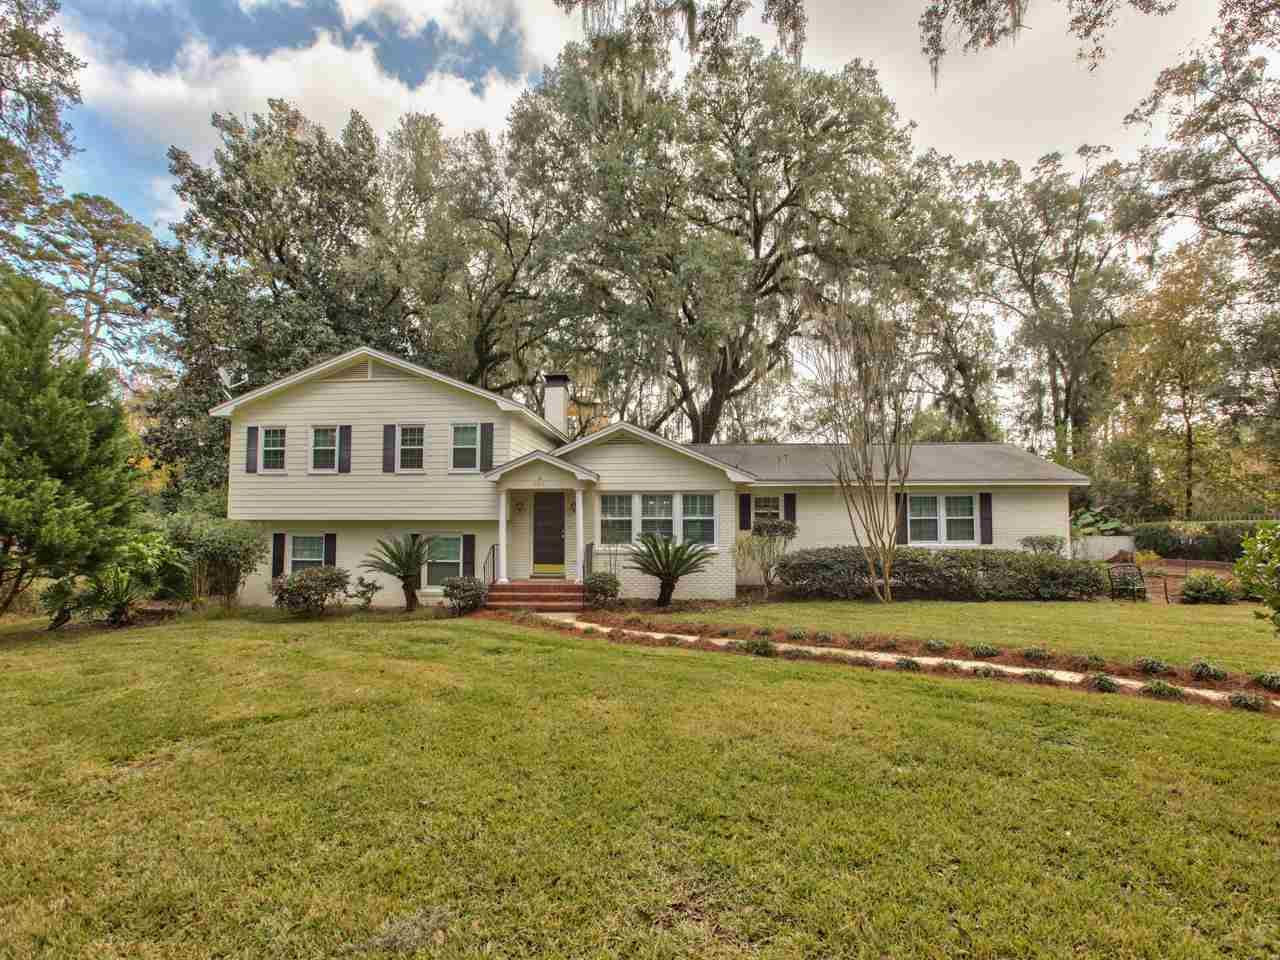 Photo of 2413 Killarney Way, TALLAHASSEE, FL 32309 (MLS # 327740)